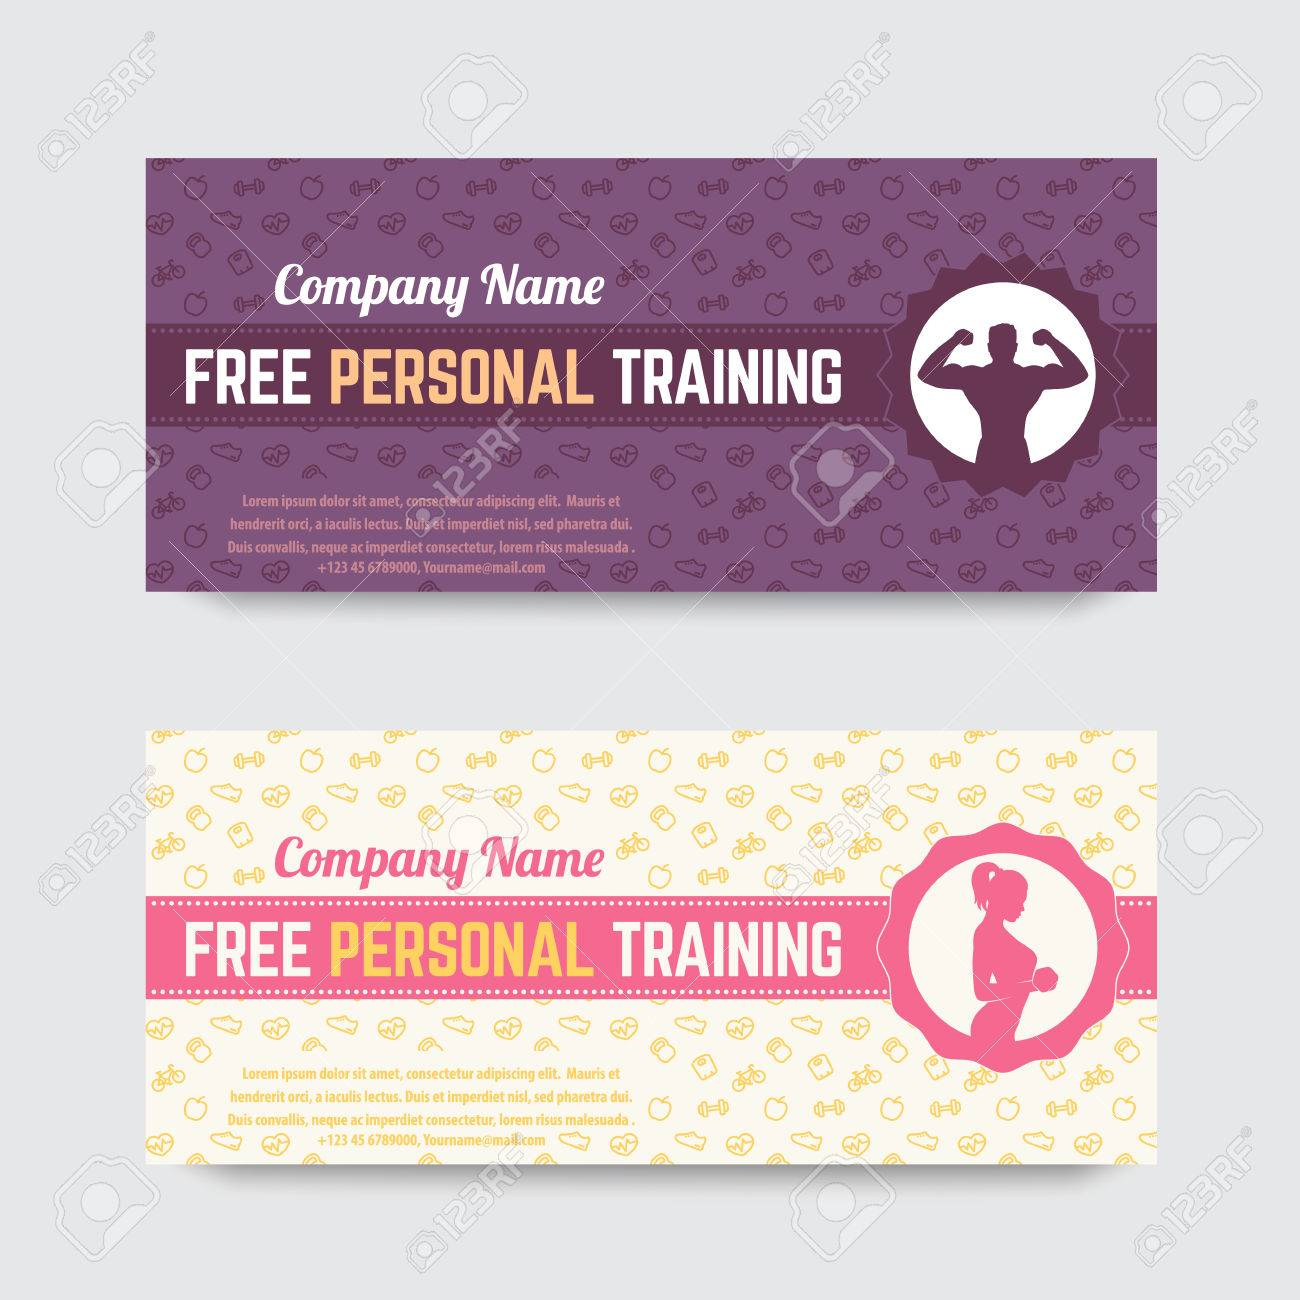 Personal training gift certificate template engagement invitation free personal training gift voucher design for gym fitness 57679504 free personal training gift voucher design for gym fitness club illustration stock yadclub Choice Image